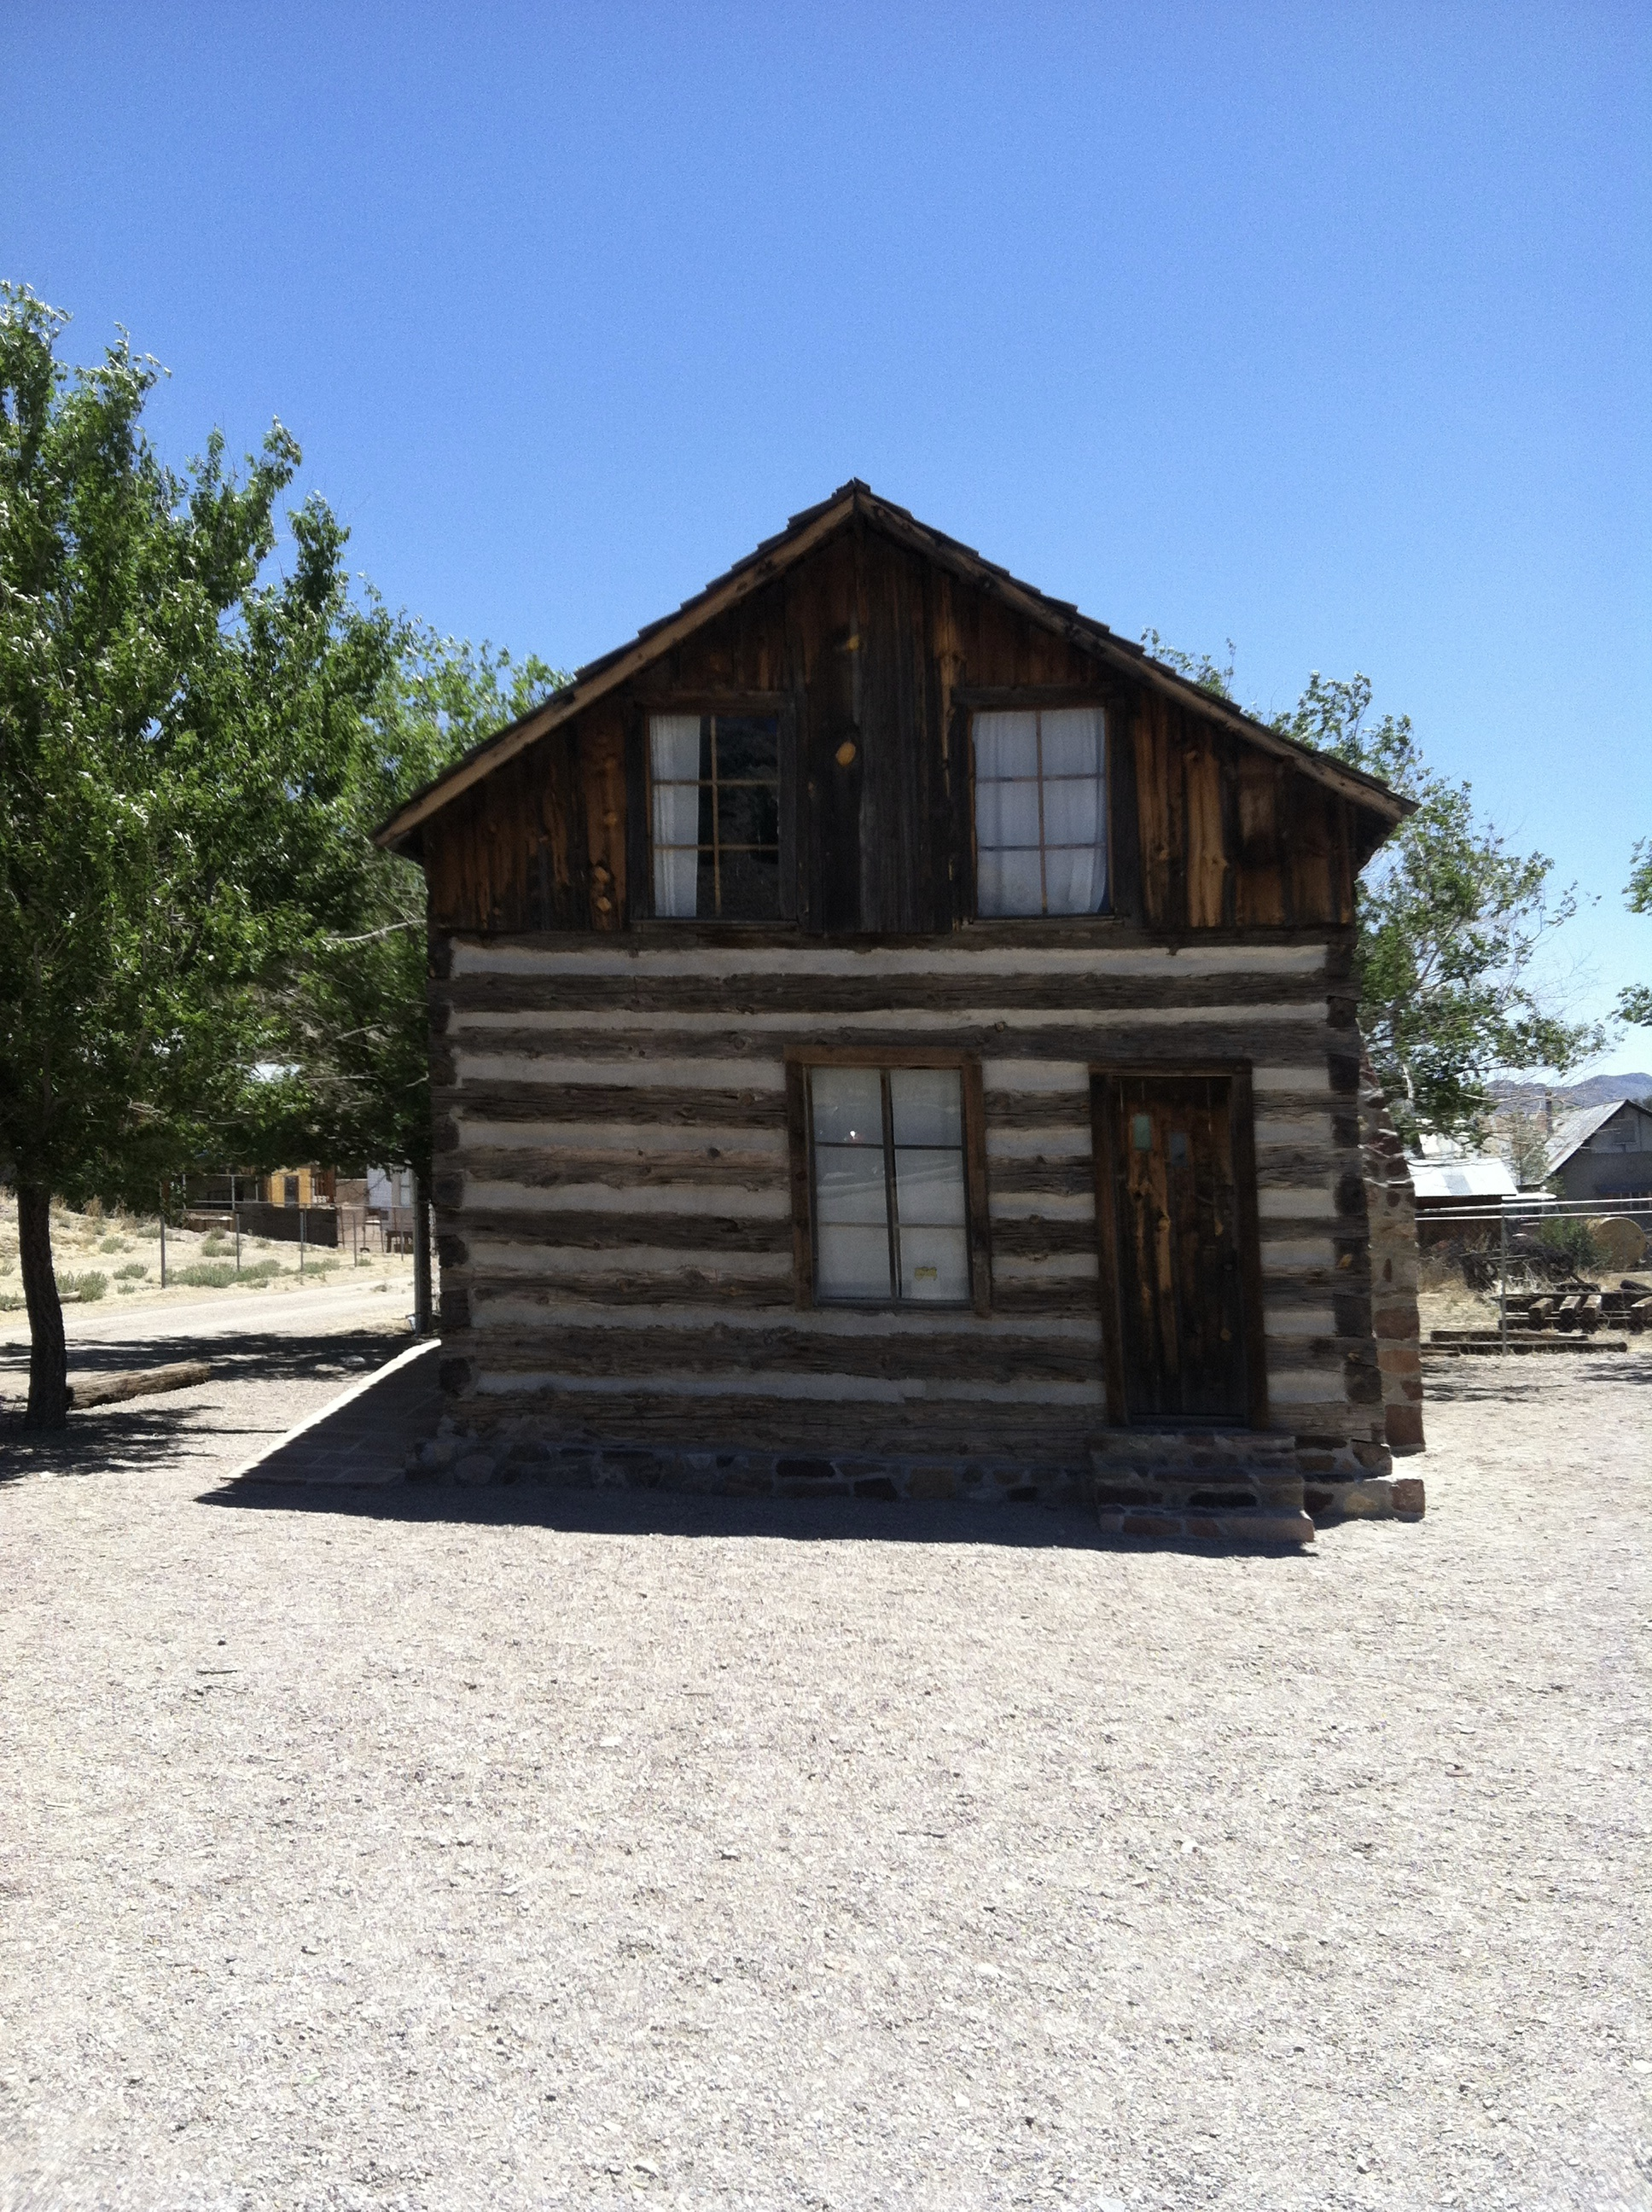 A small cabin that was moved here from further down the main street.